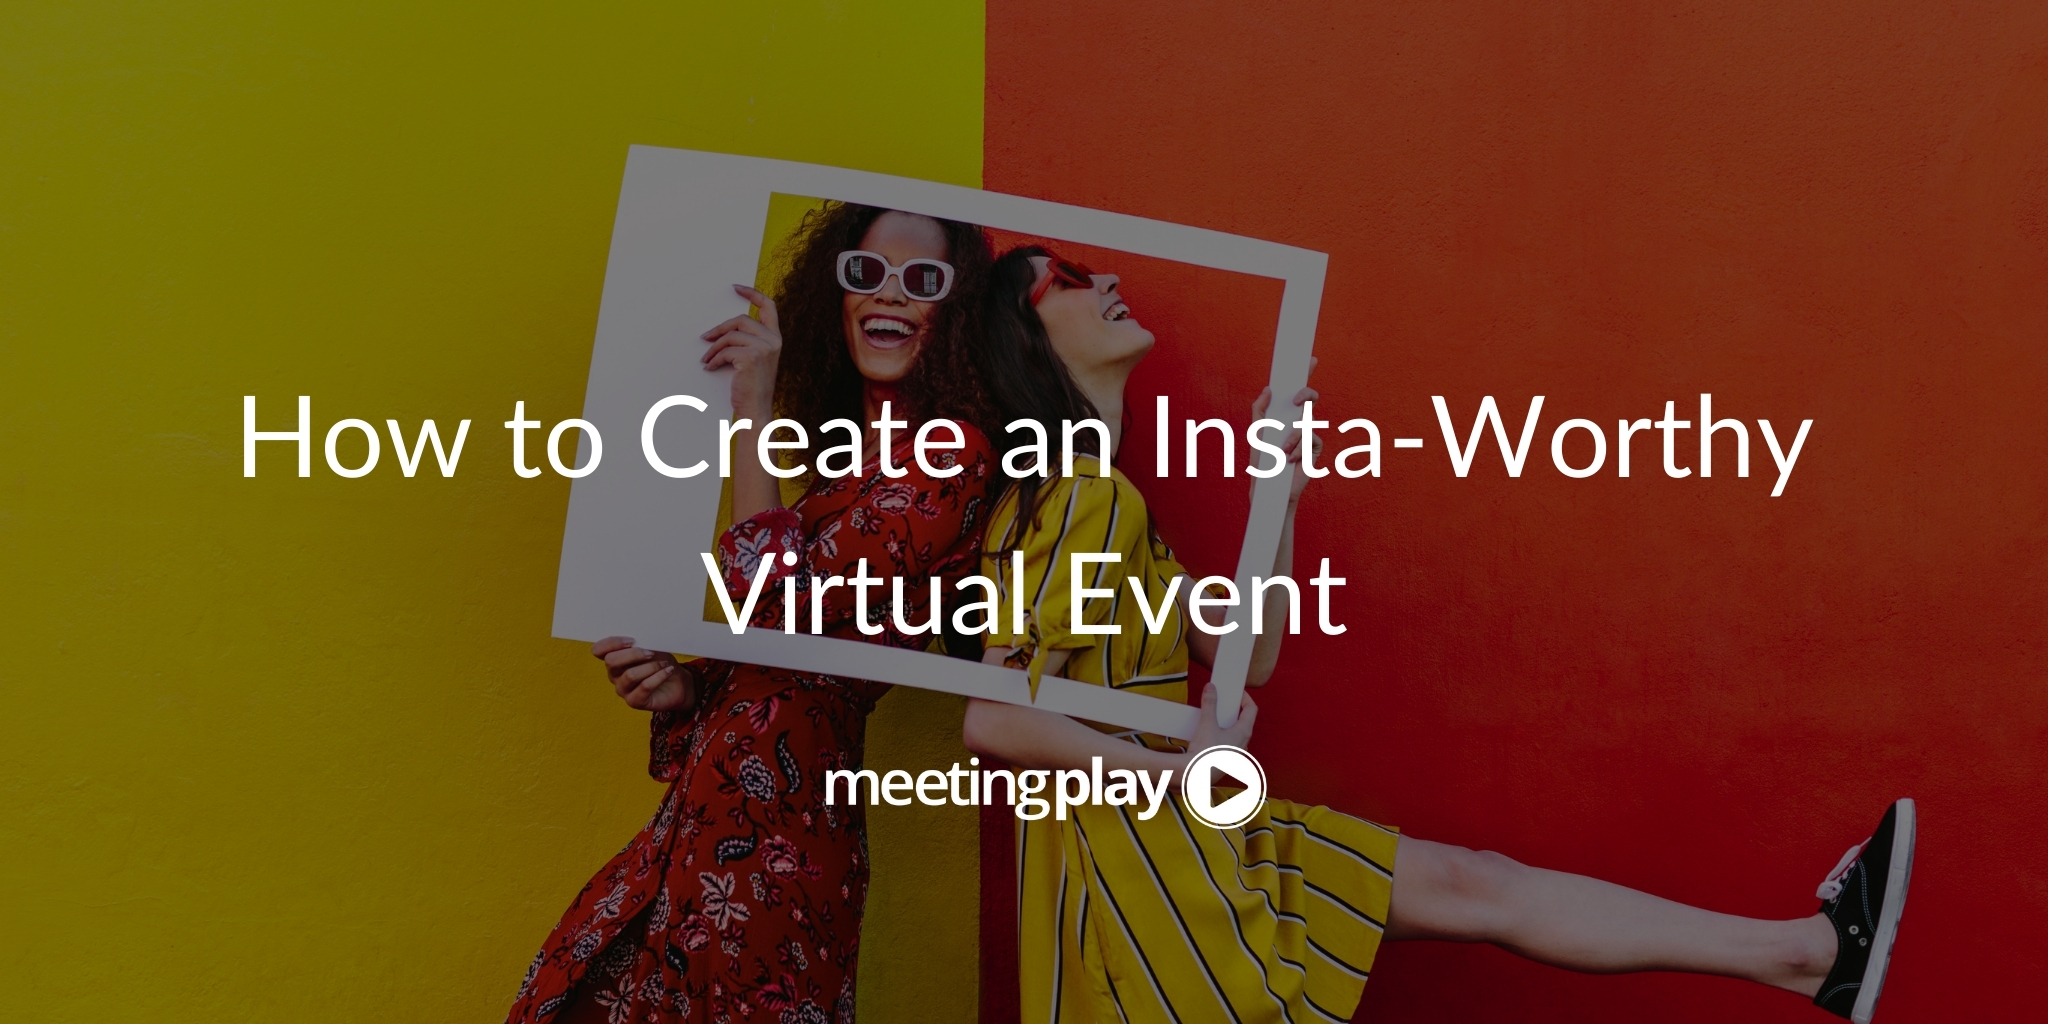 How to Create an Insta-Worthy Virtual Event